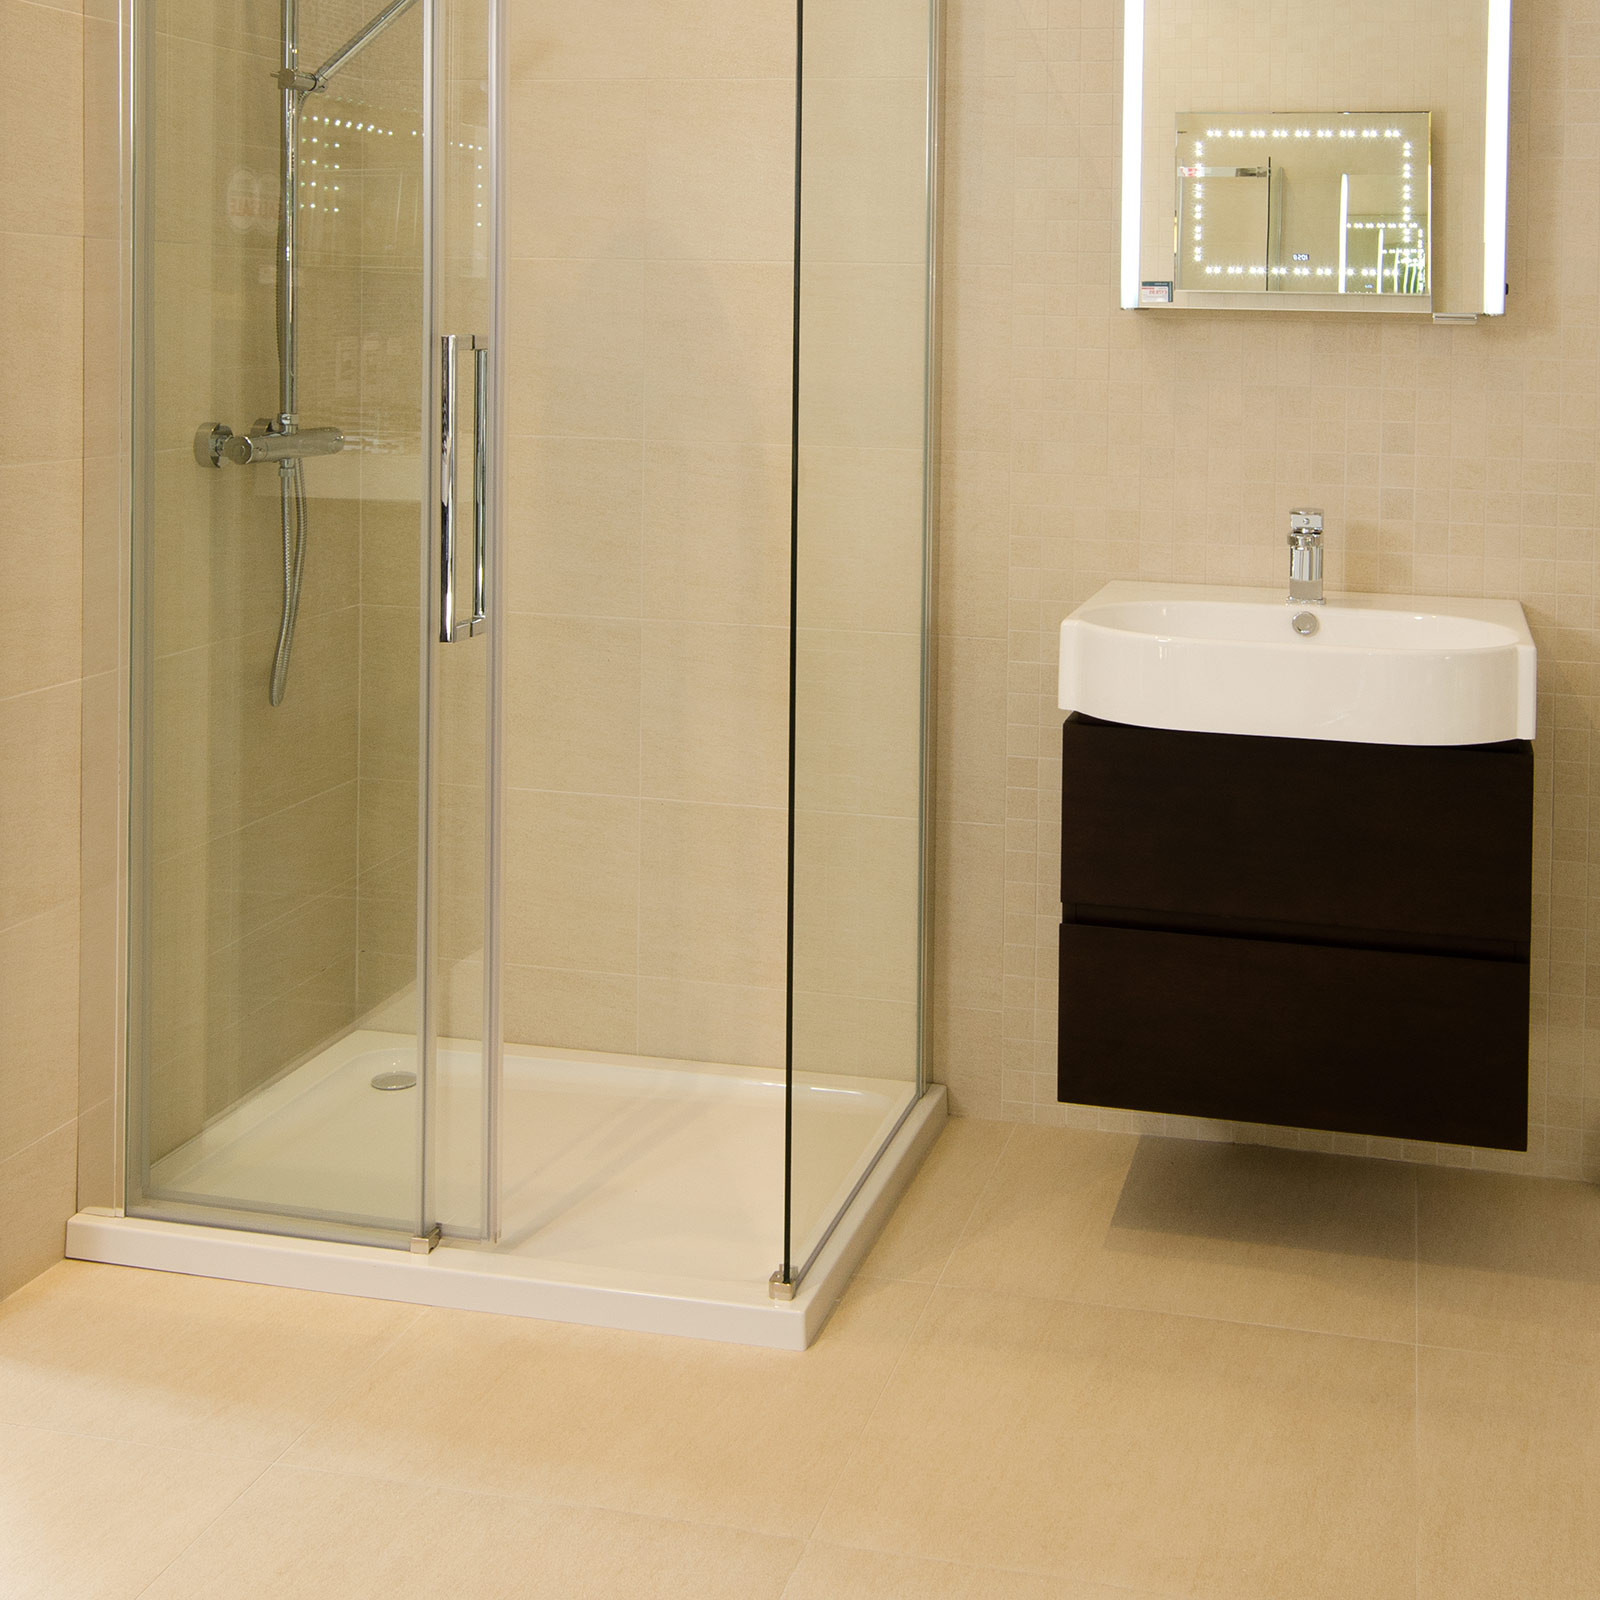 Shower Floor Tiles Which Why And How: Quattro Beige Wall/Floor Tile